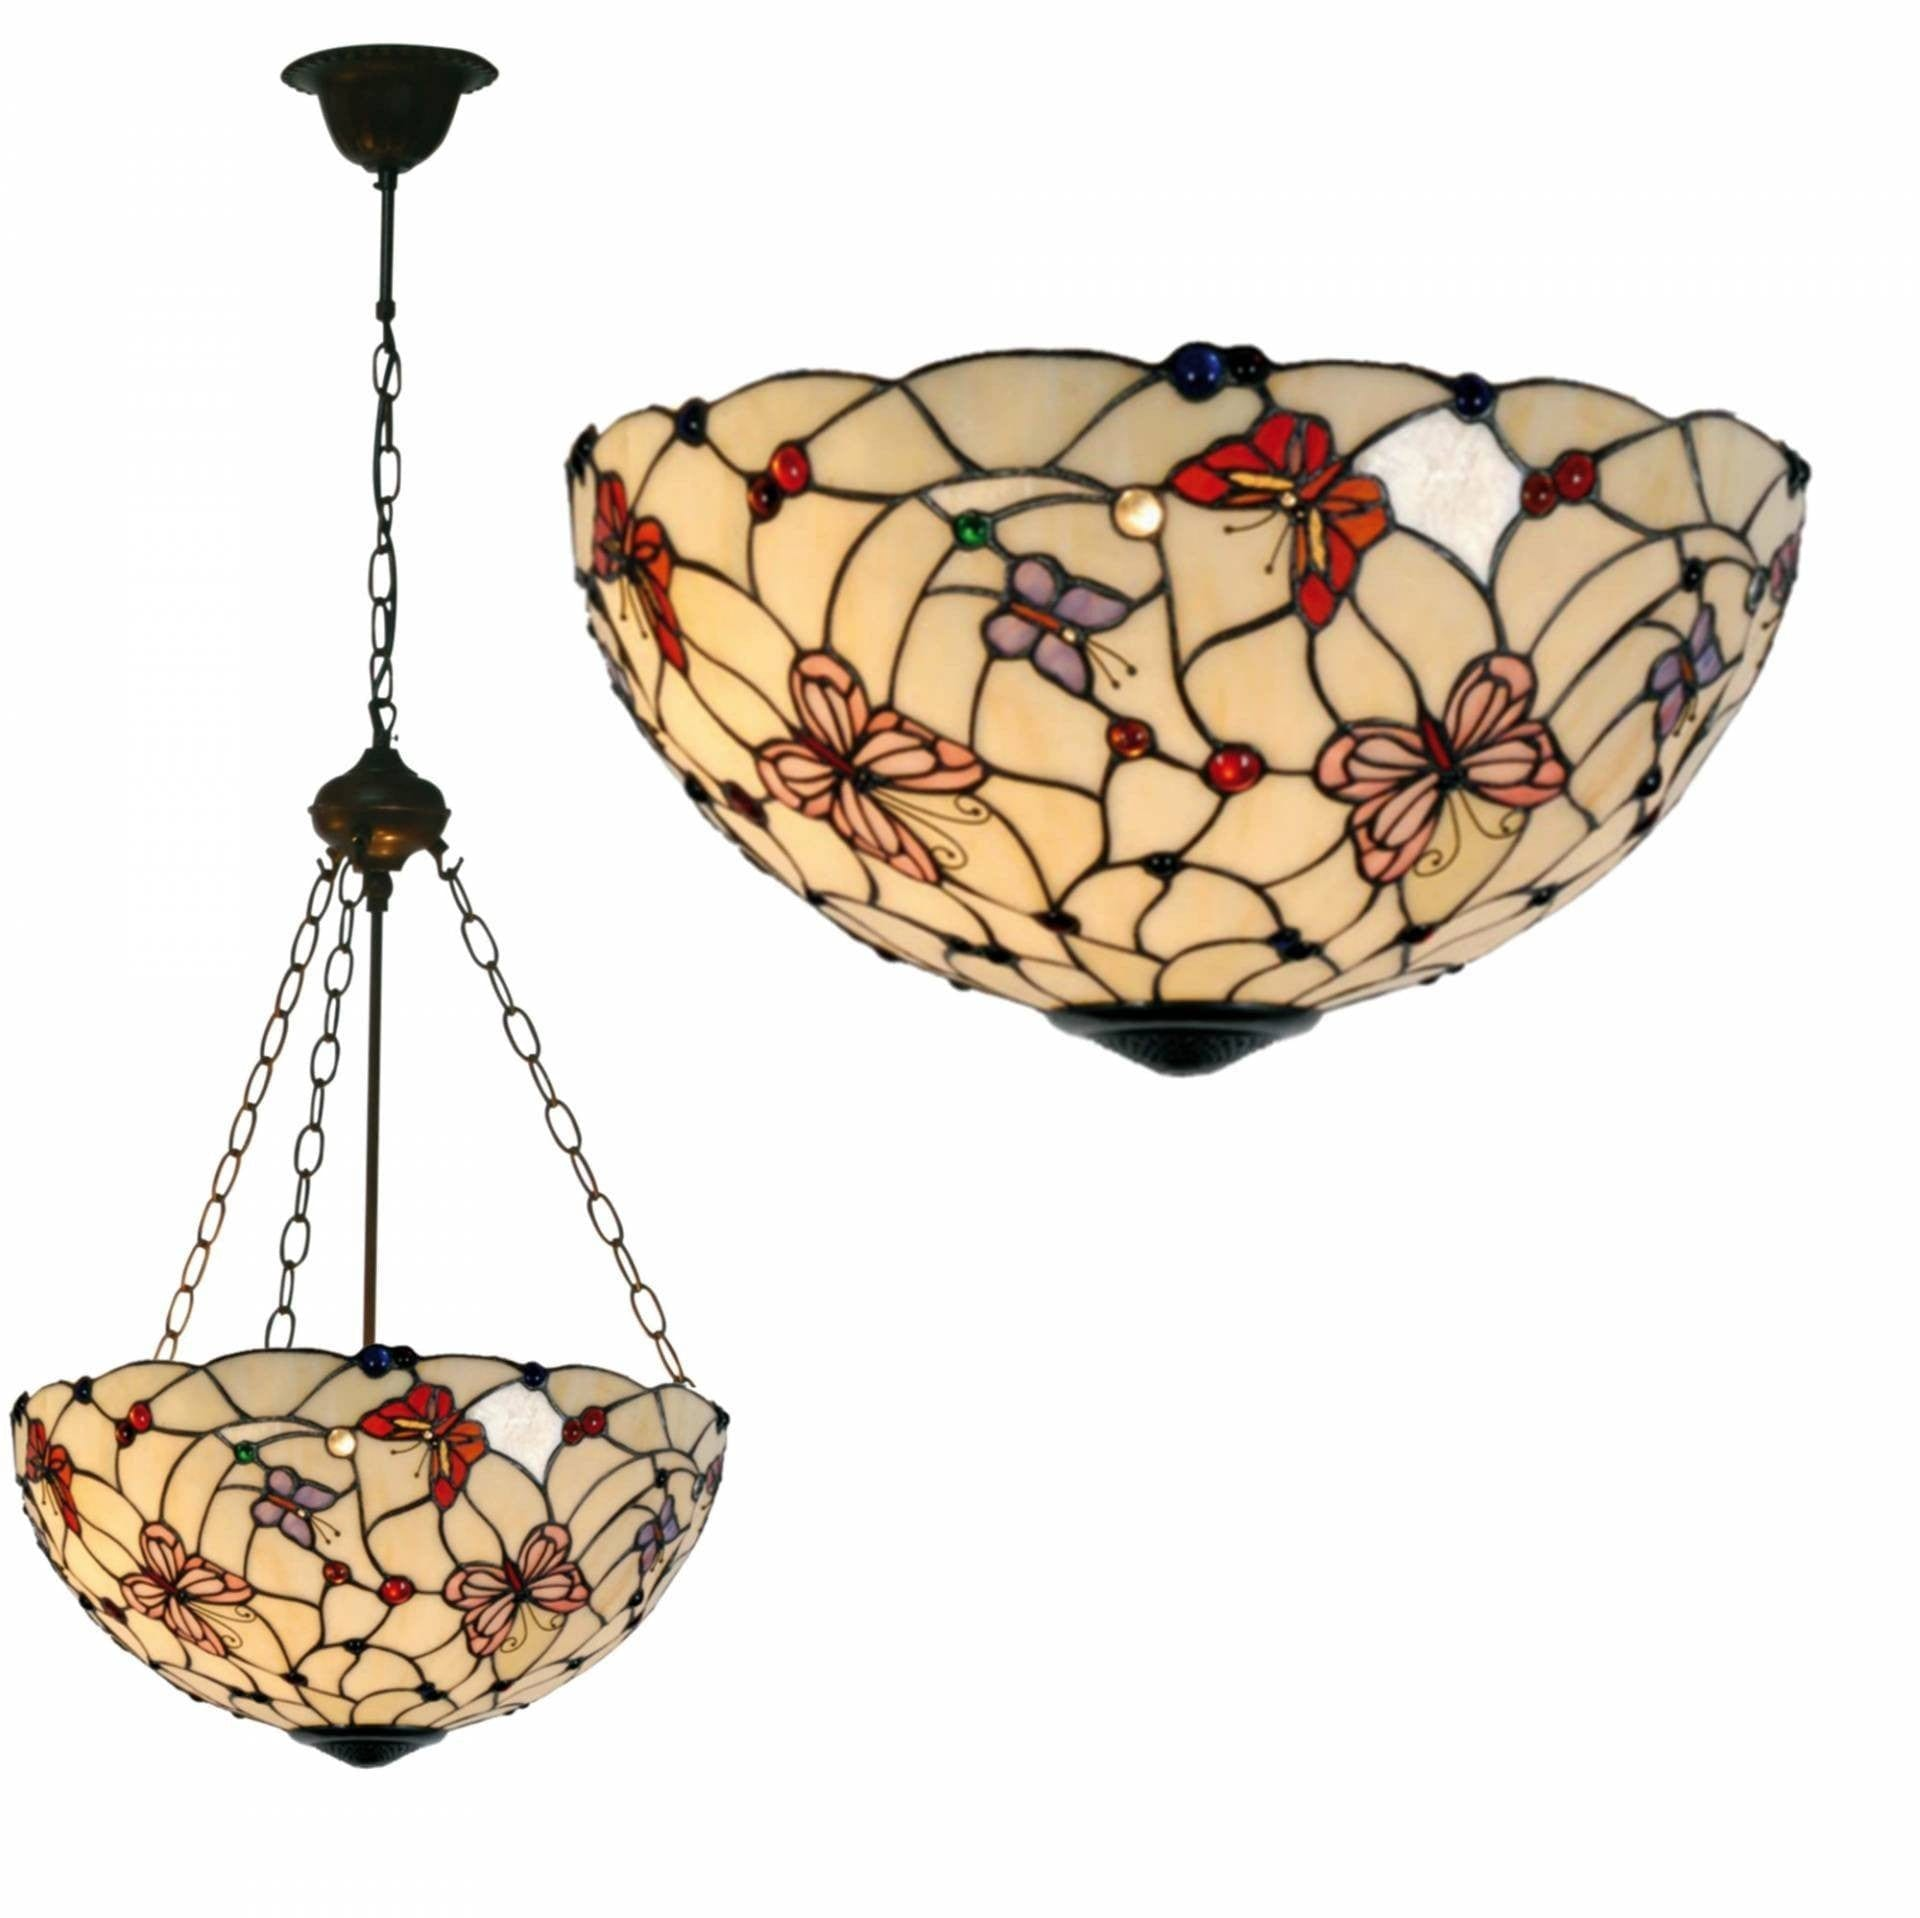 London inverted tiffany ceiling light fancy chain aloadofball Gallery